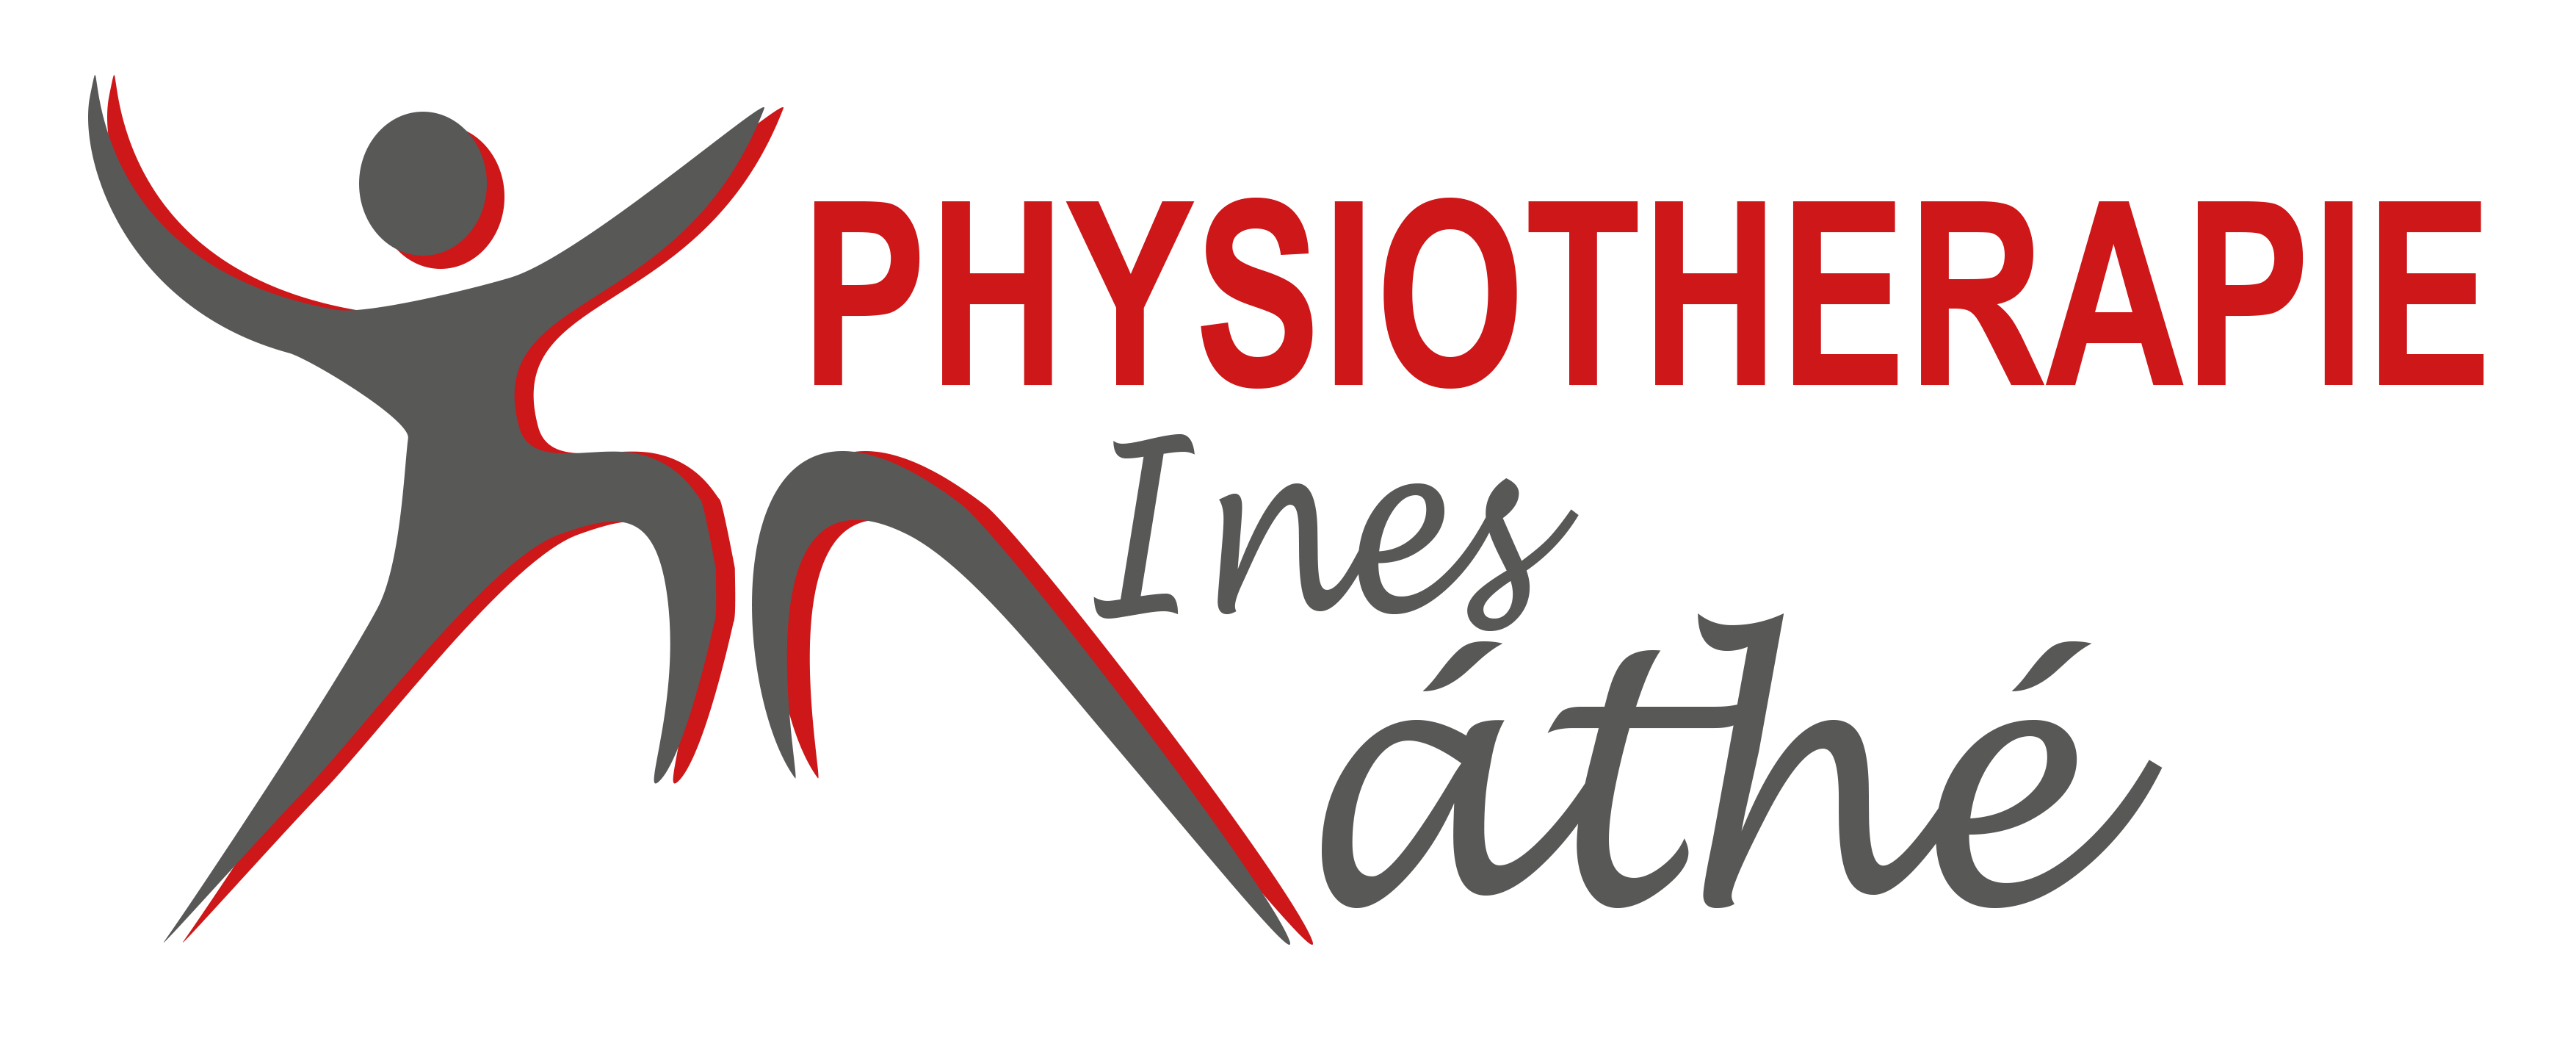 Physiotherapie Mathe